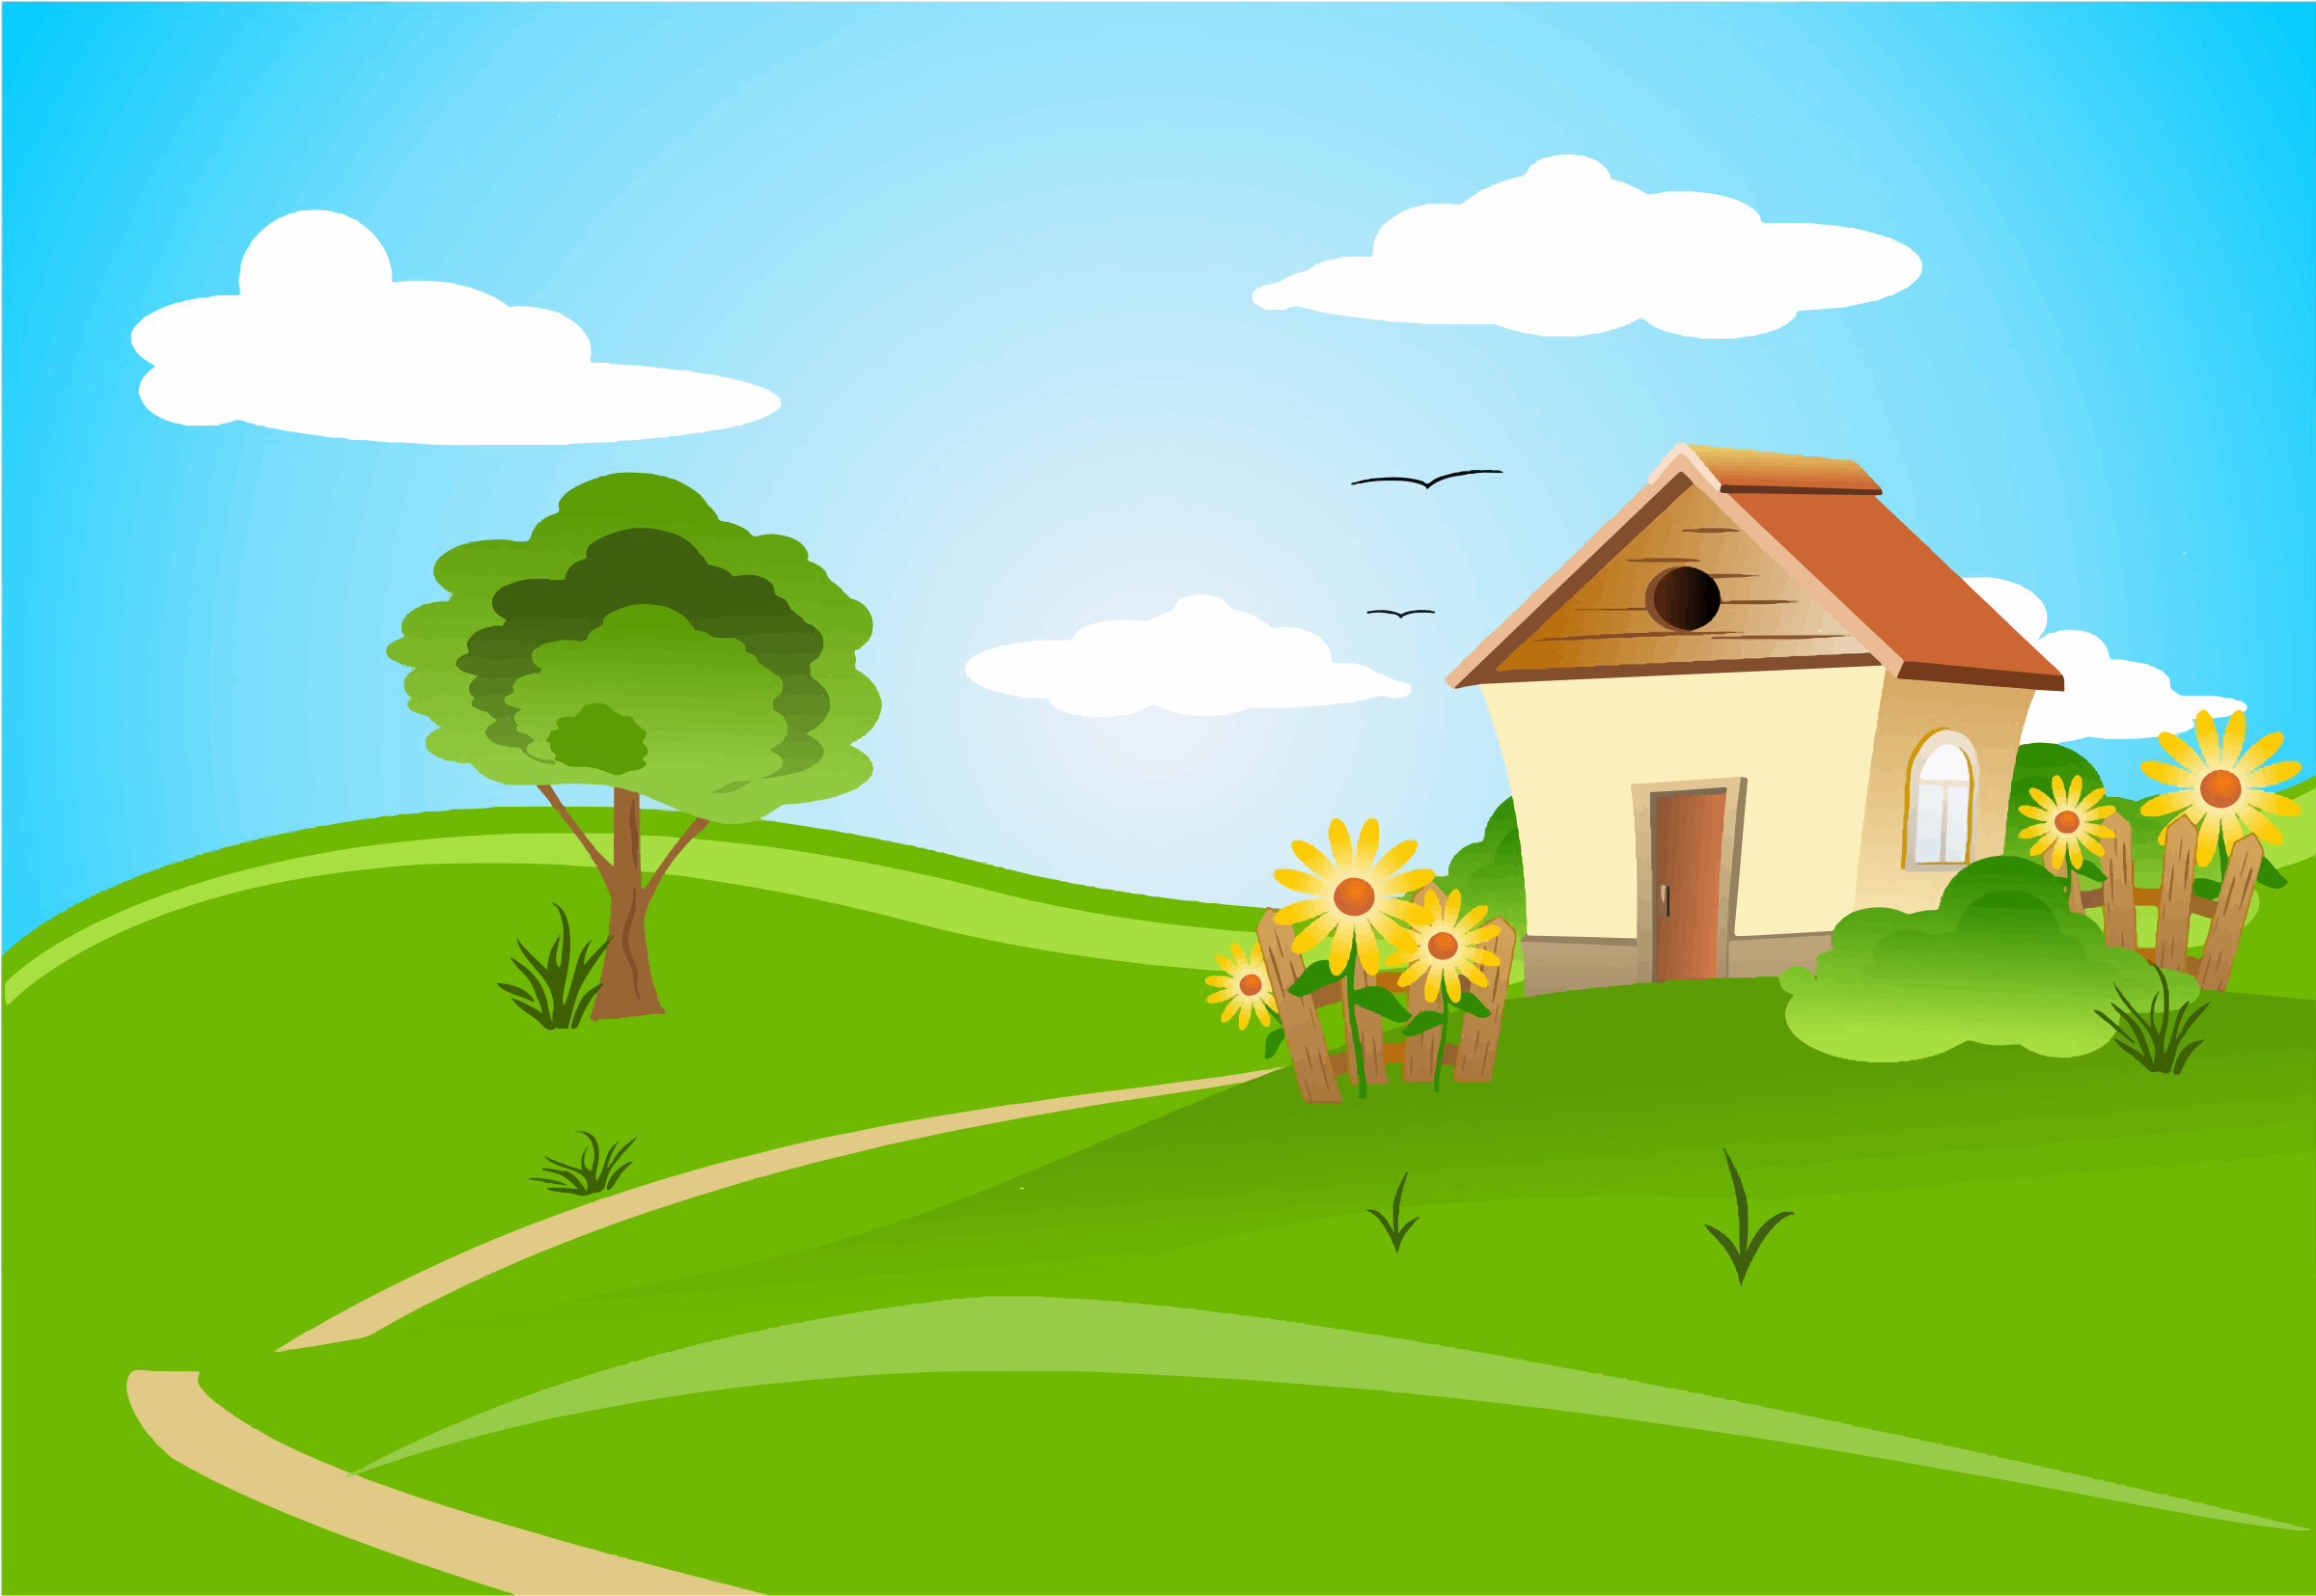 Rolling Hills Clipart - Clipart Kid